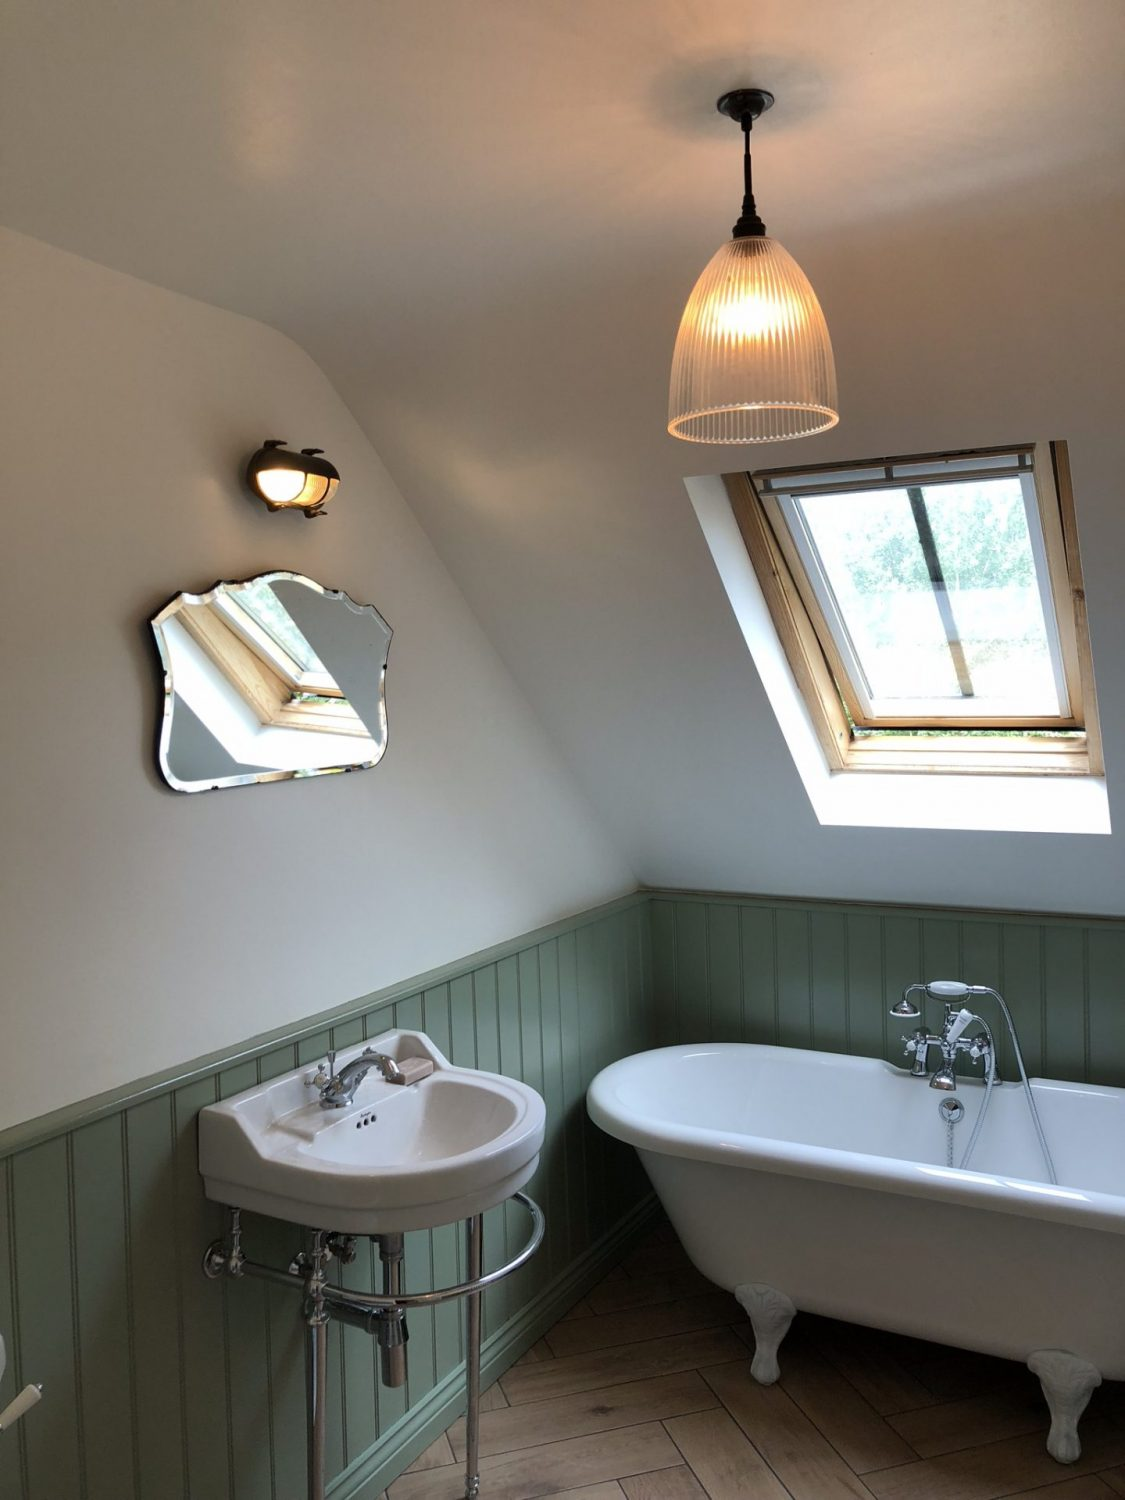 Green tongue and groove rolltop bathroom